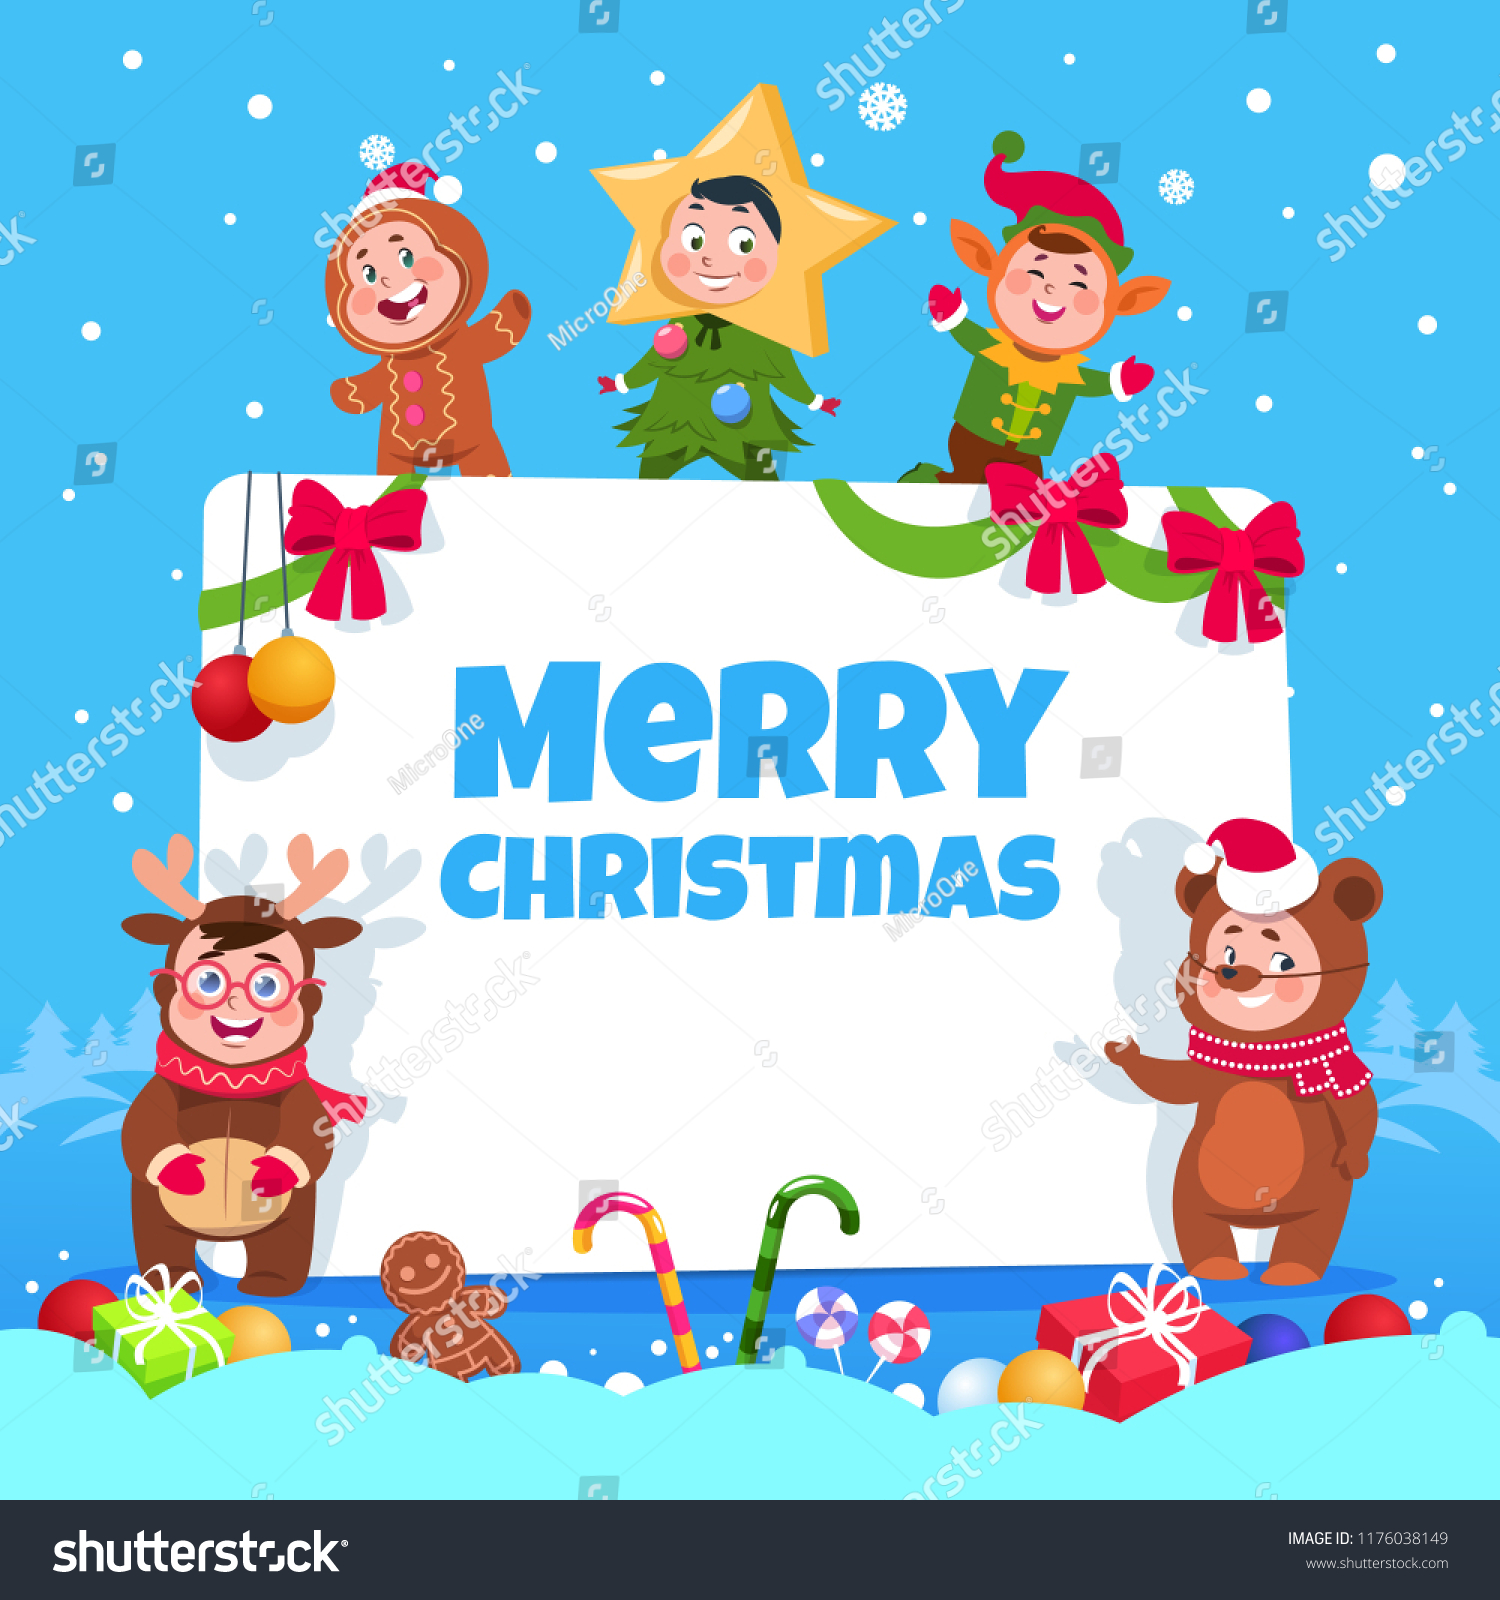 Merry Christmas Greeting Card Kids Christmas Stock Vector Royalty